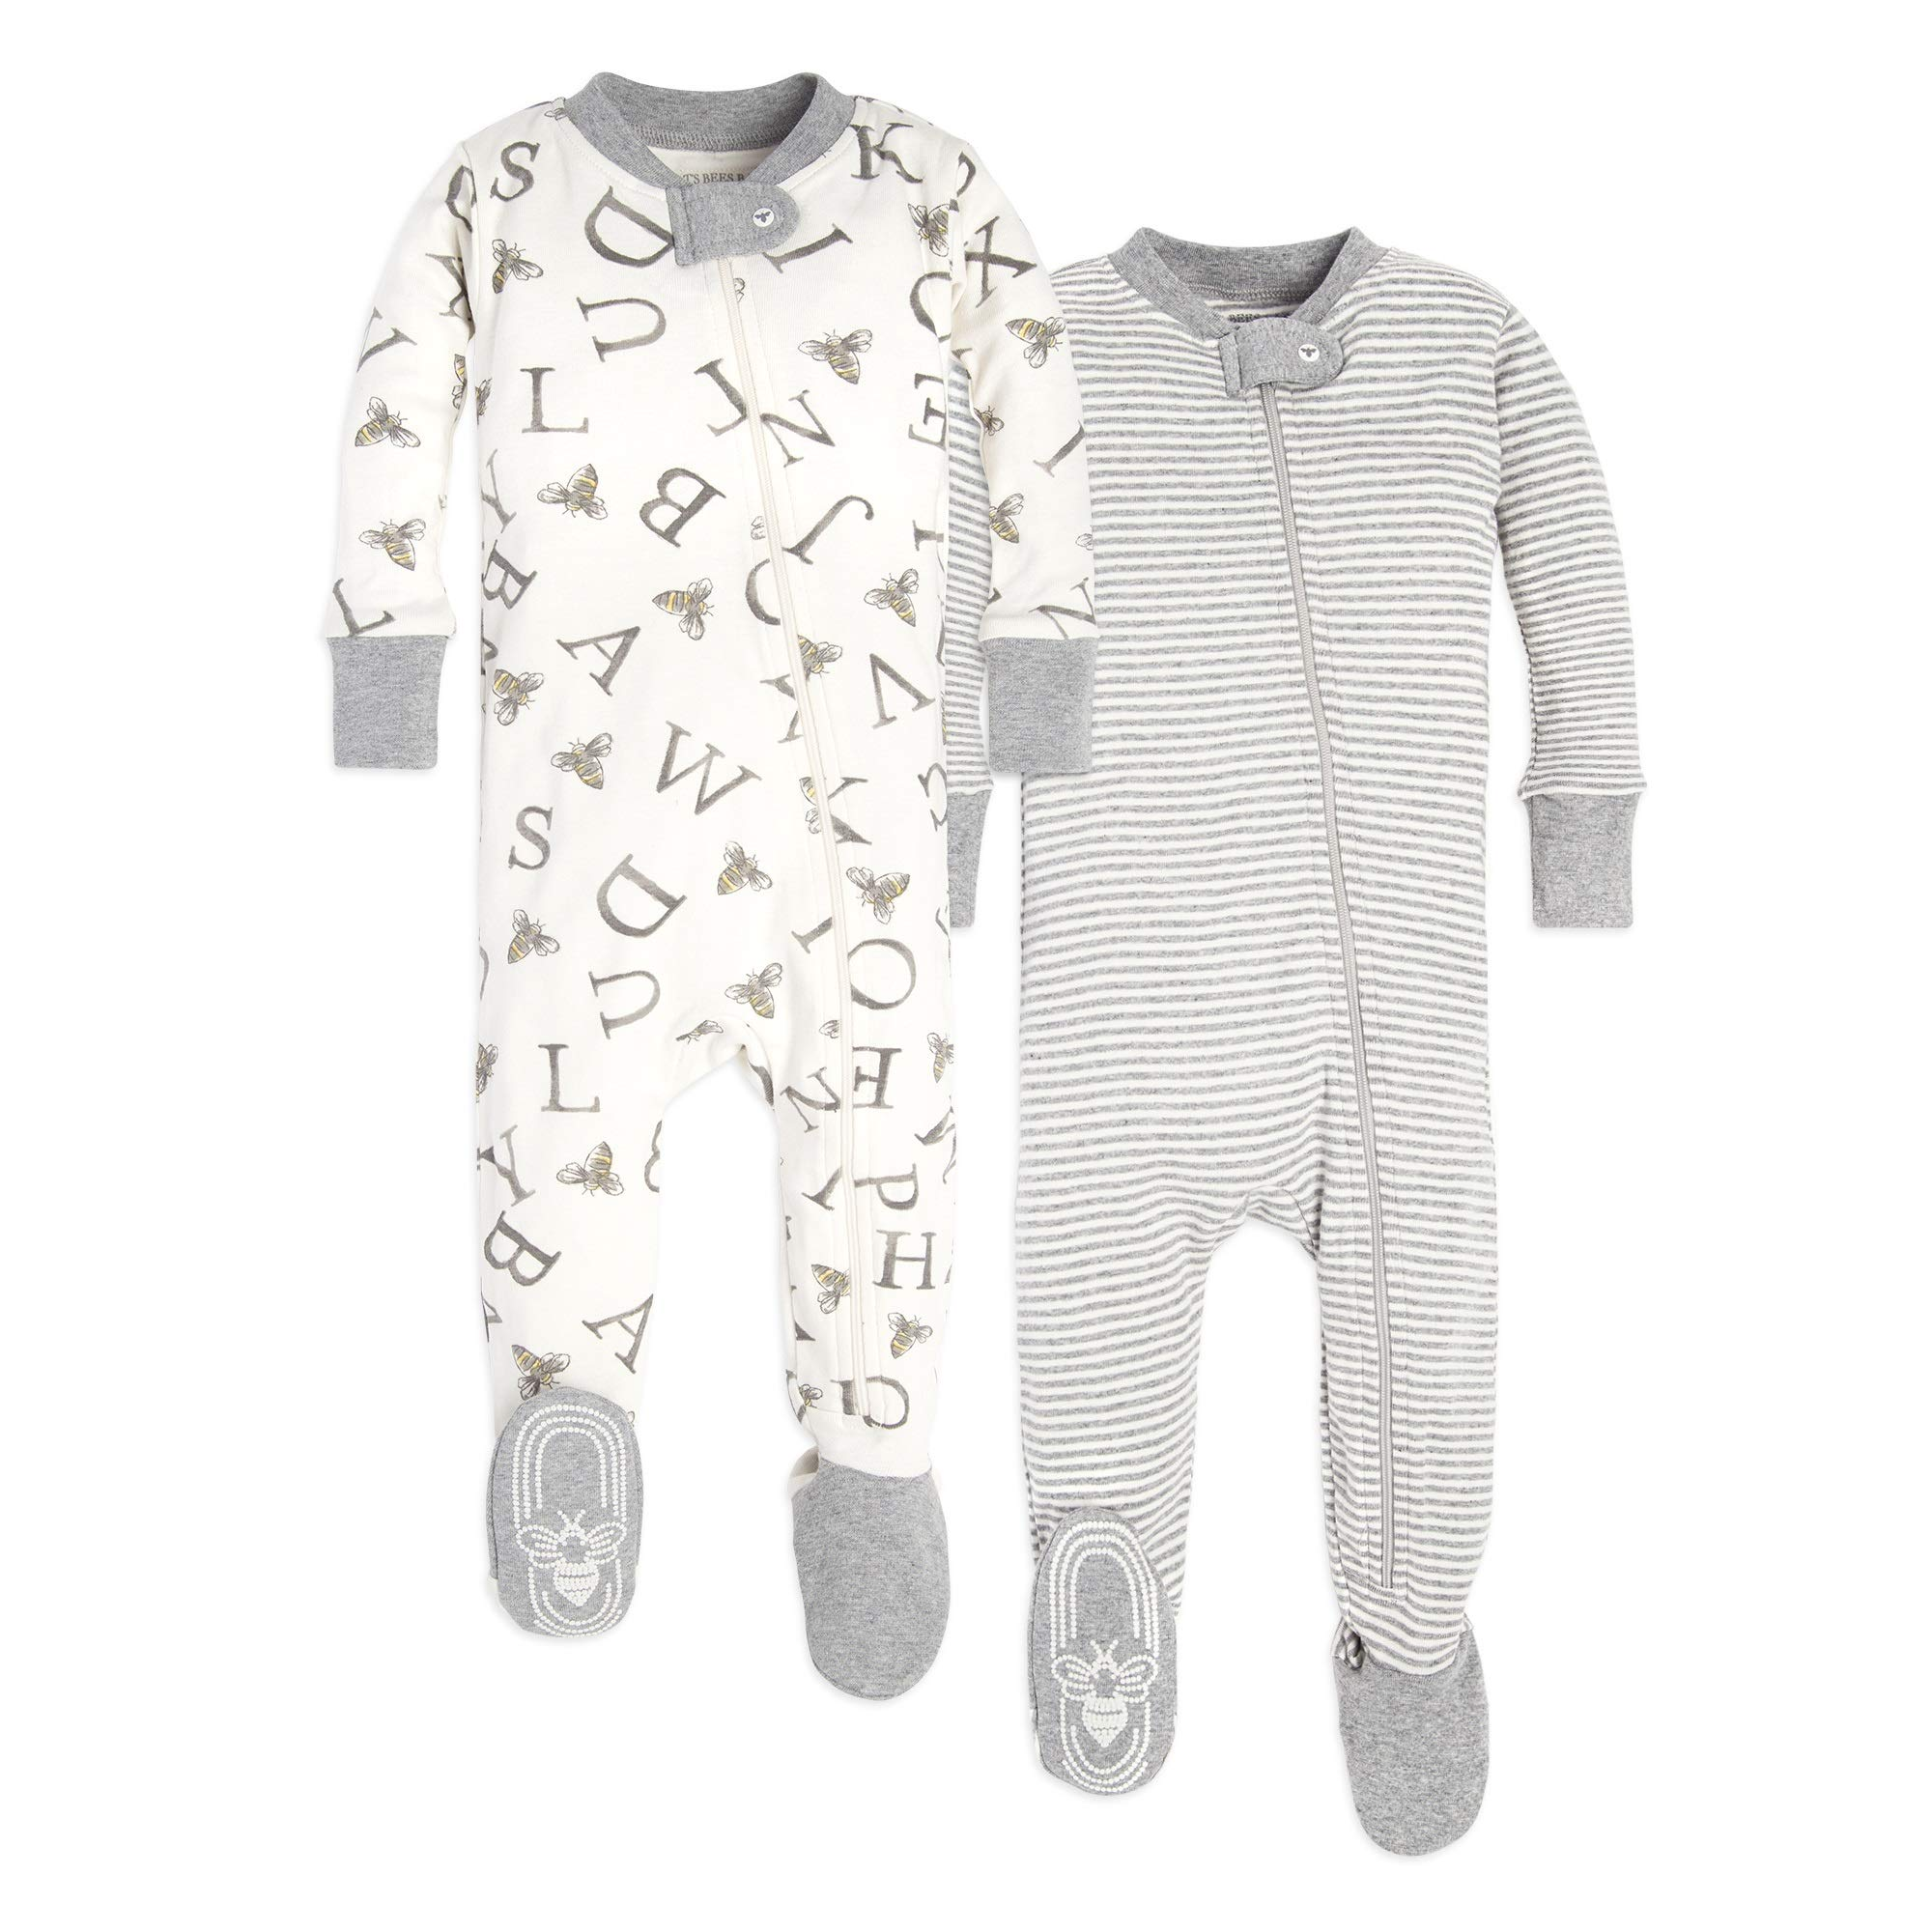 Burt's Bees Baby Unisex Pajamas, A-Bee-C/Stripes 2-Pack, 24 Months